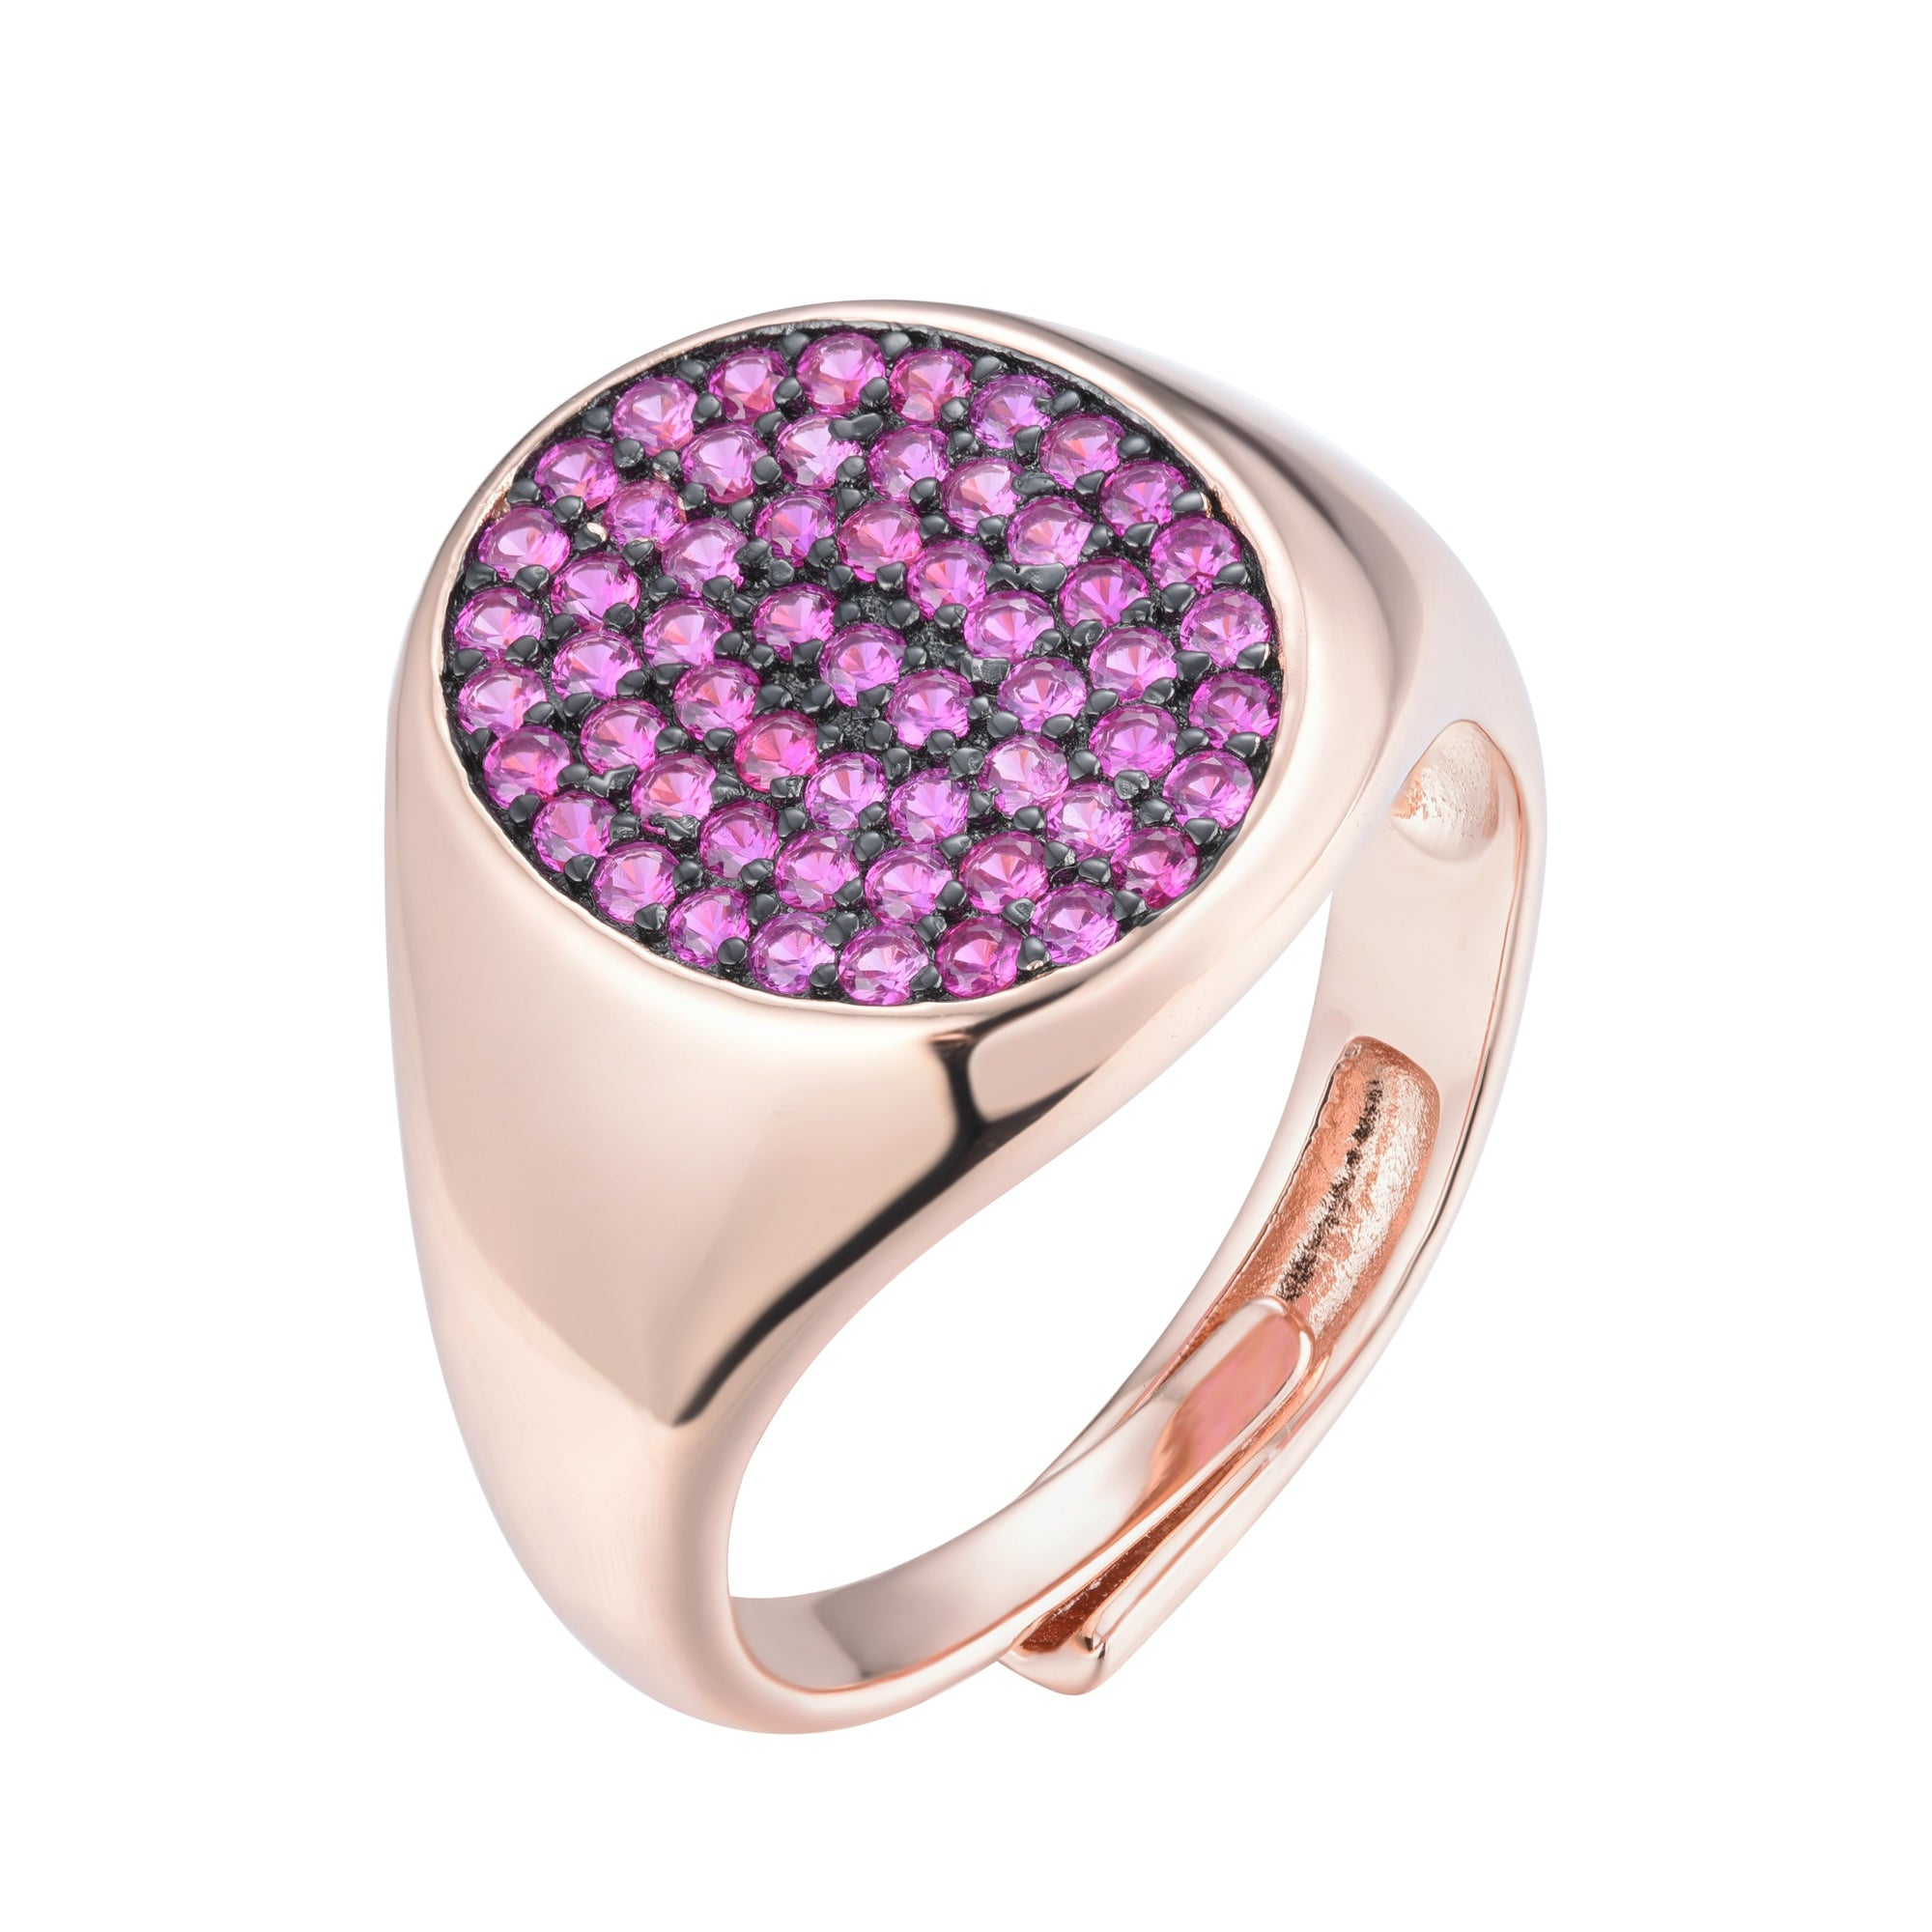 Ferentina | Frozen Yogurt Ring | 925 Silver | Ruby CZ | Black Rhodium & Rose Gold Plated